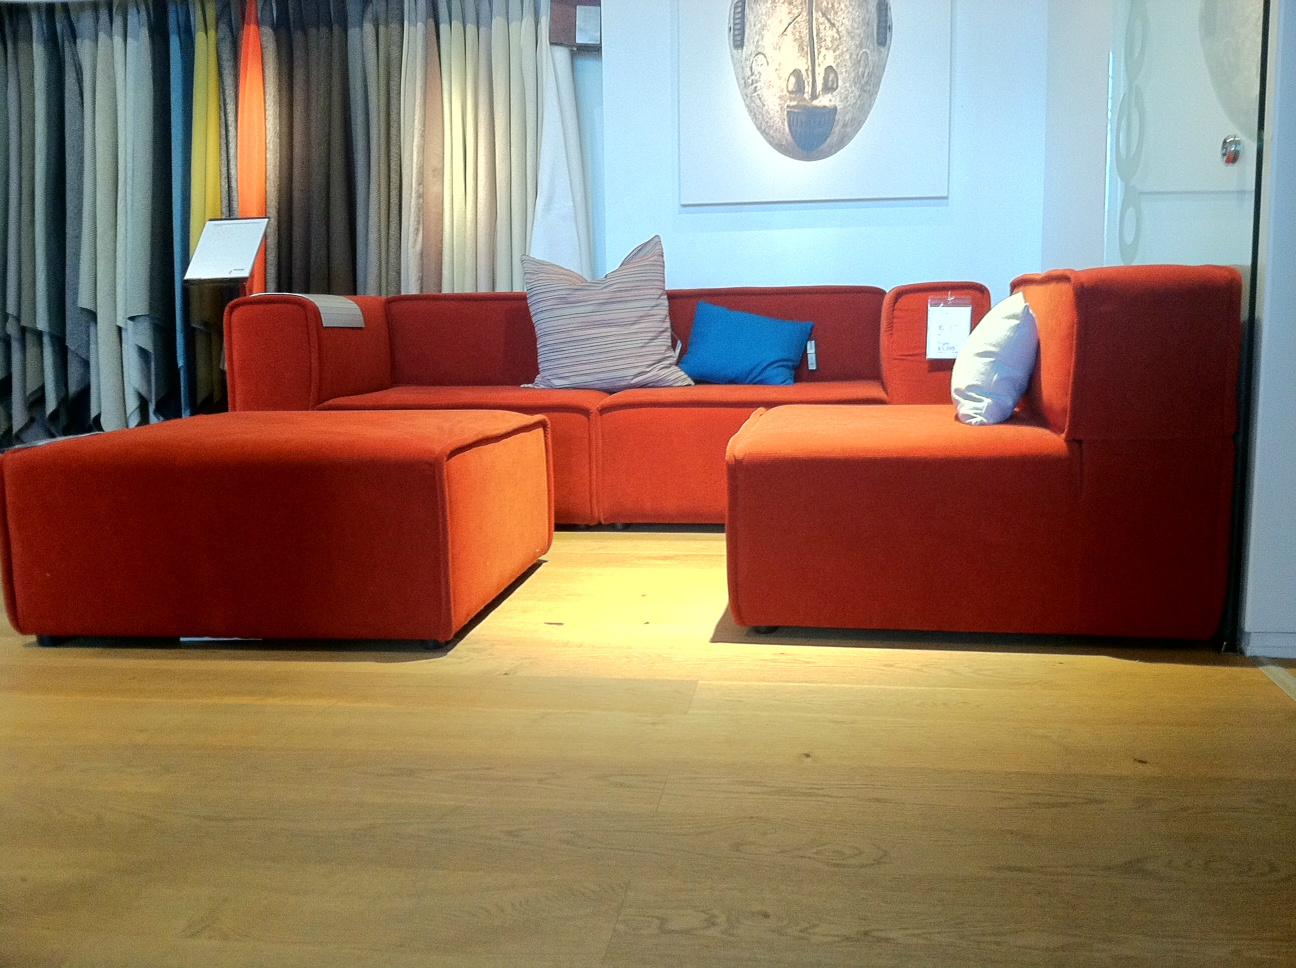 Boconcept Chicago On Twitter This Amazing Modular Carmo Sofa Floor Model Is 20 Off Mention